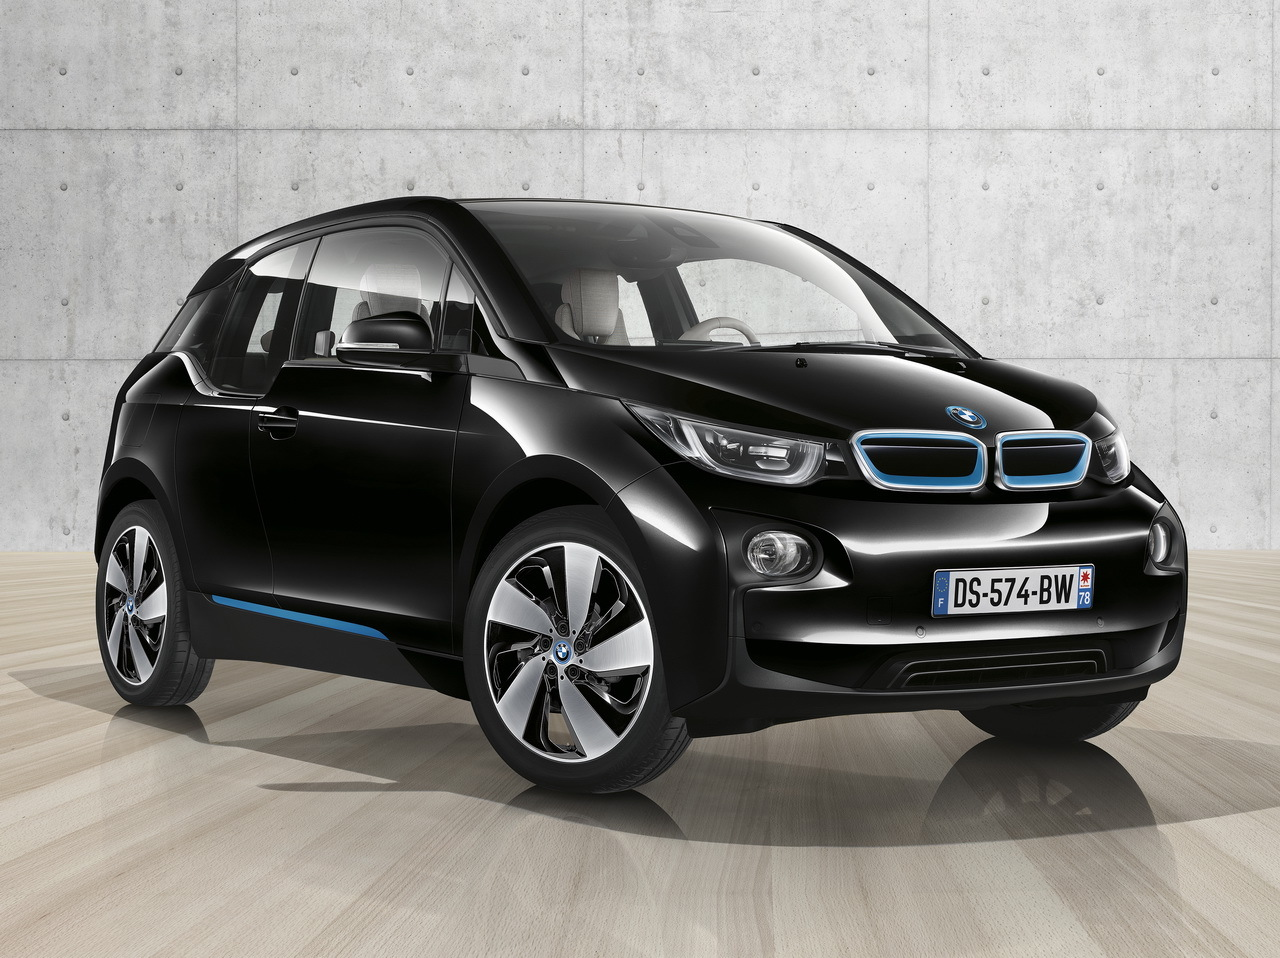 bmw i3 black edition une s rie sp ciale pour la bmw lectrique photo 1 l 39 argus. Black Bedroom Furniture Sets. Home Design Ideas